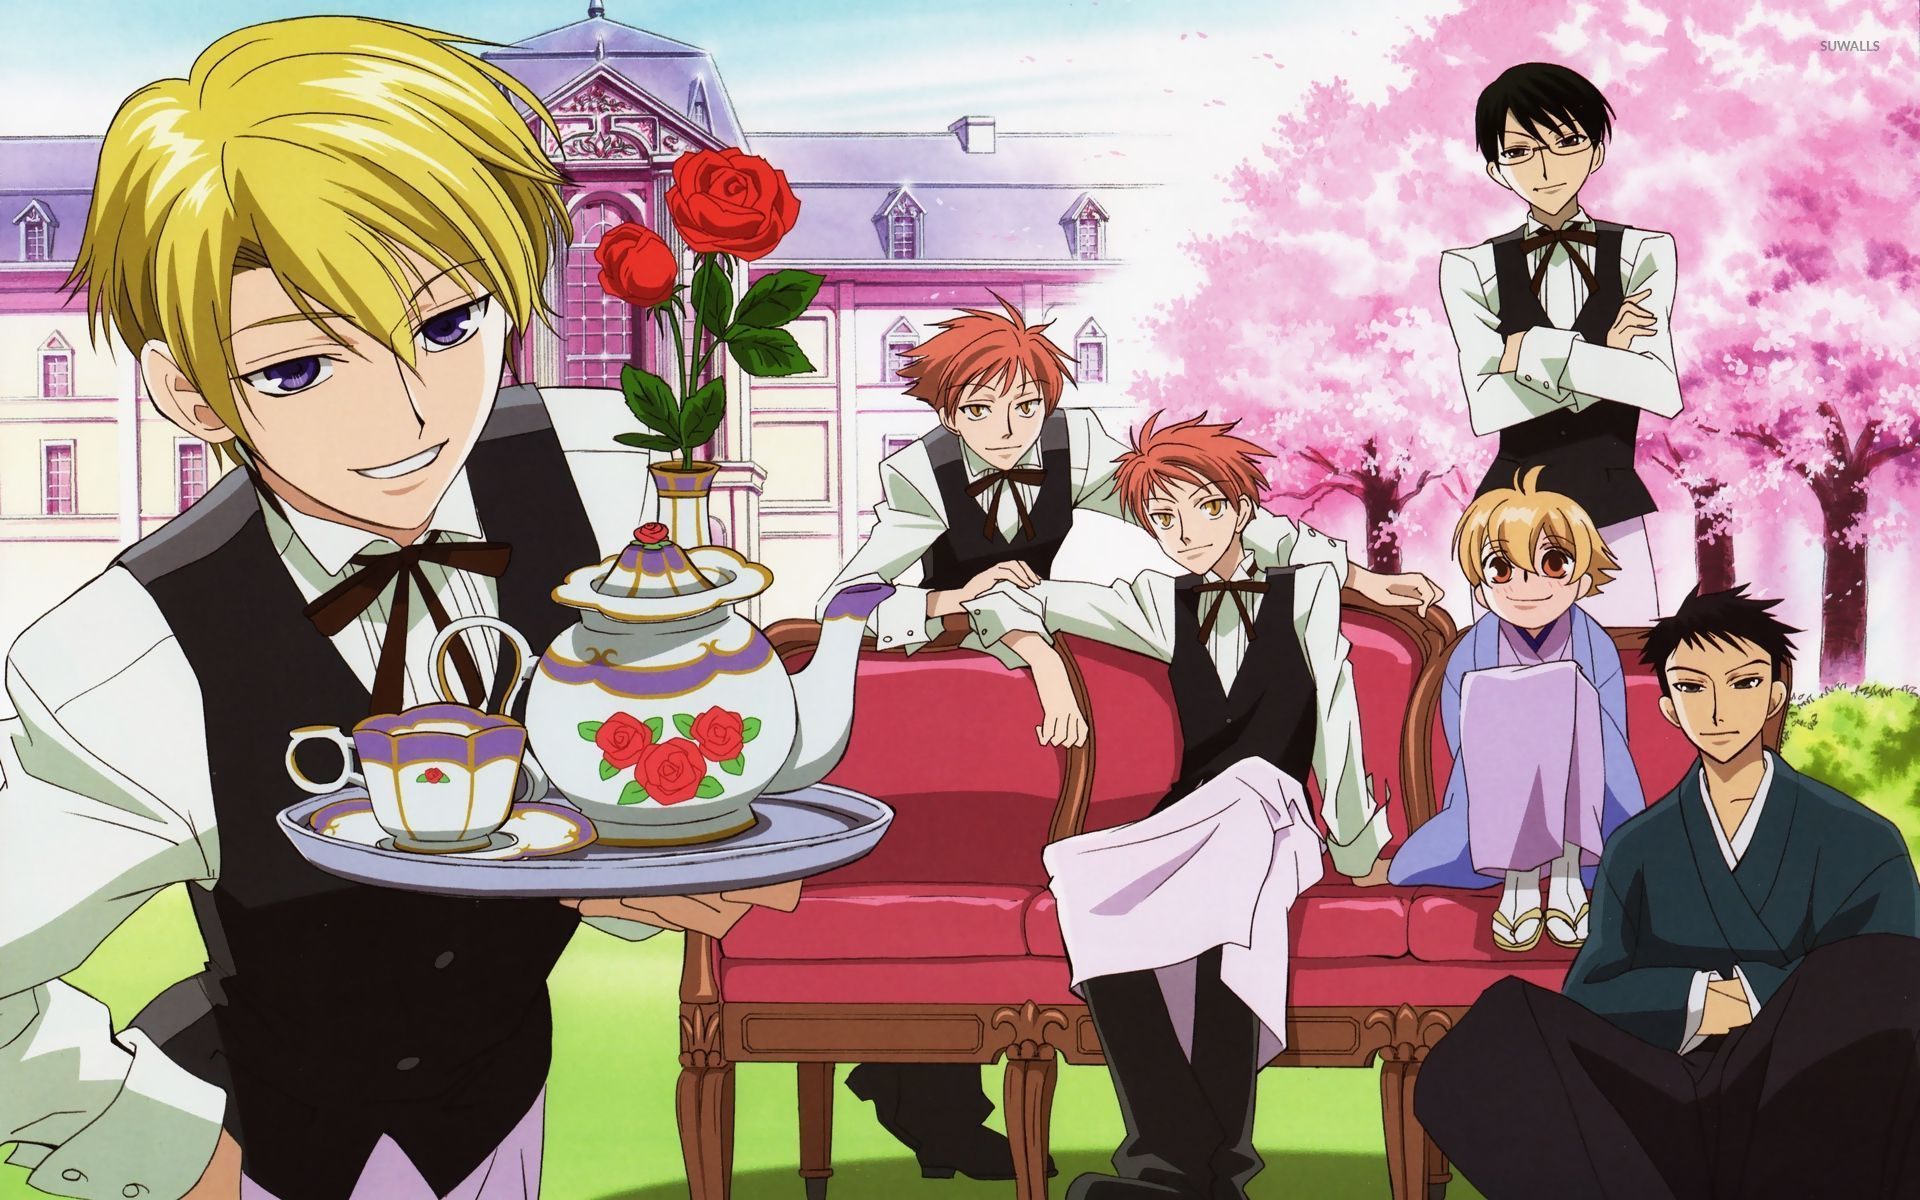 Ouran High School Host Club Wallpaper Anime Wallpapers 29186